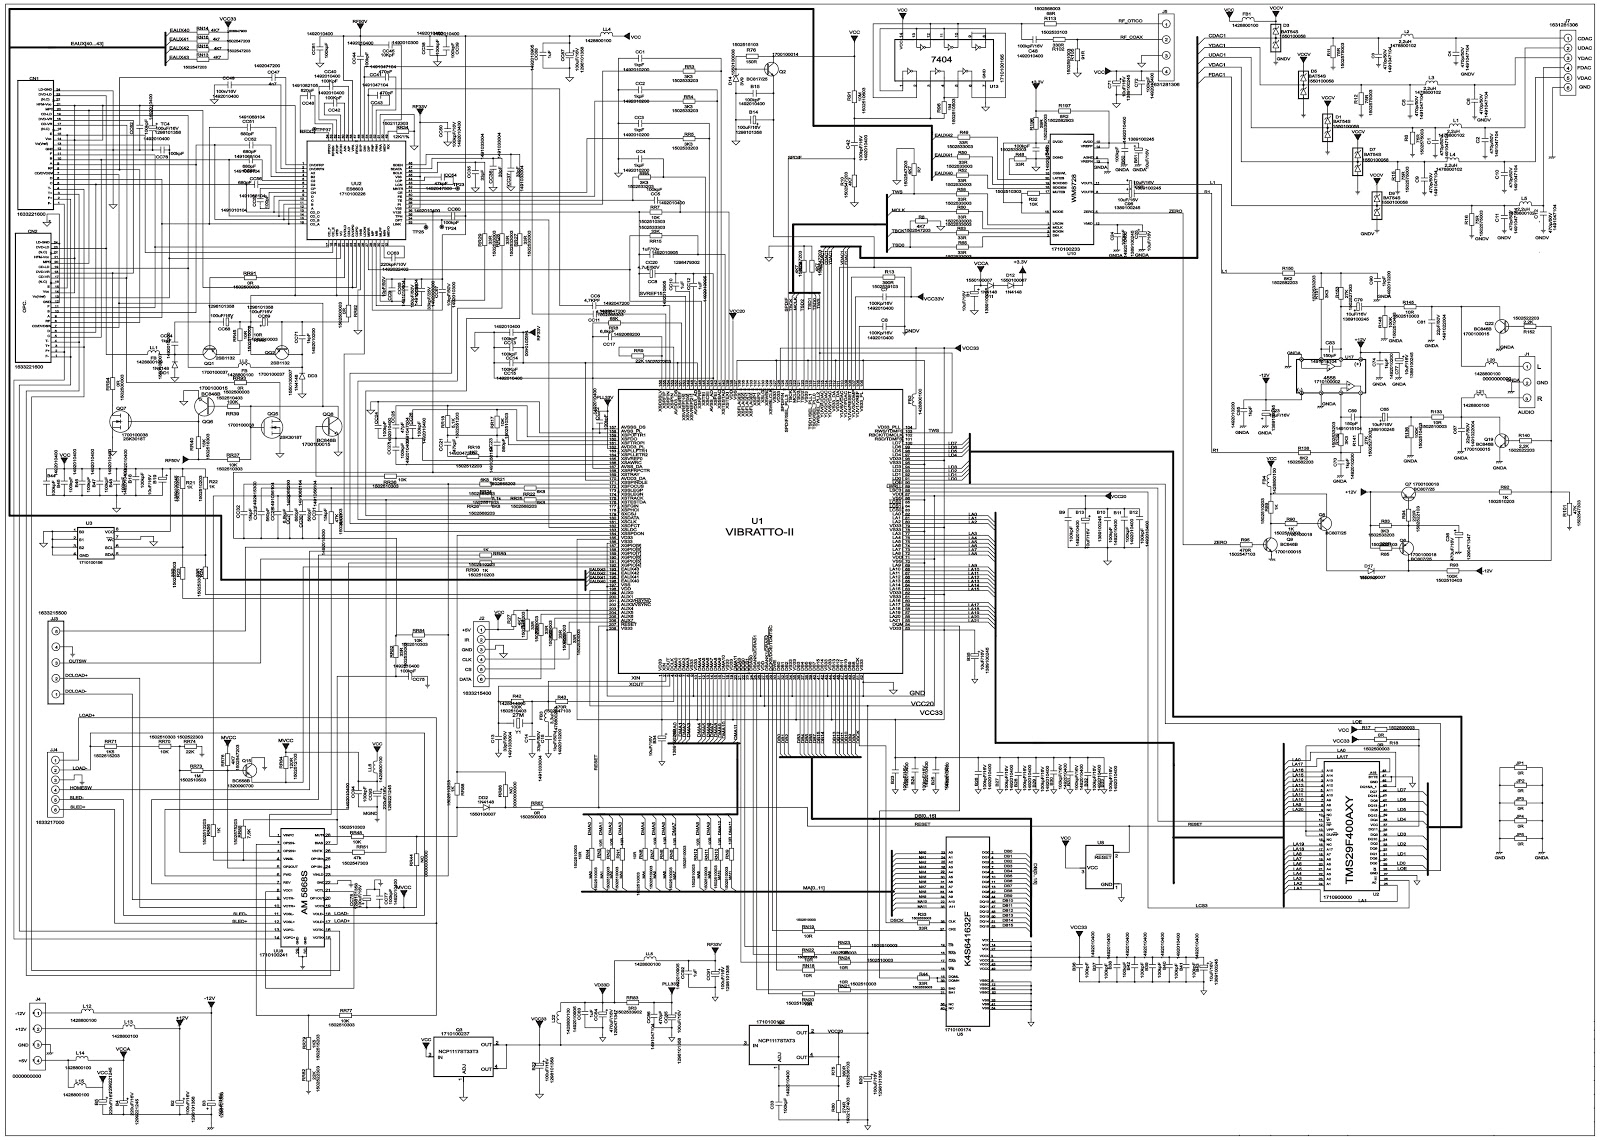 Bluesky Tvd 290fs Tv Dvd Crt Type Circuit Diagram